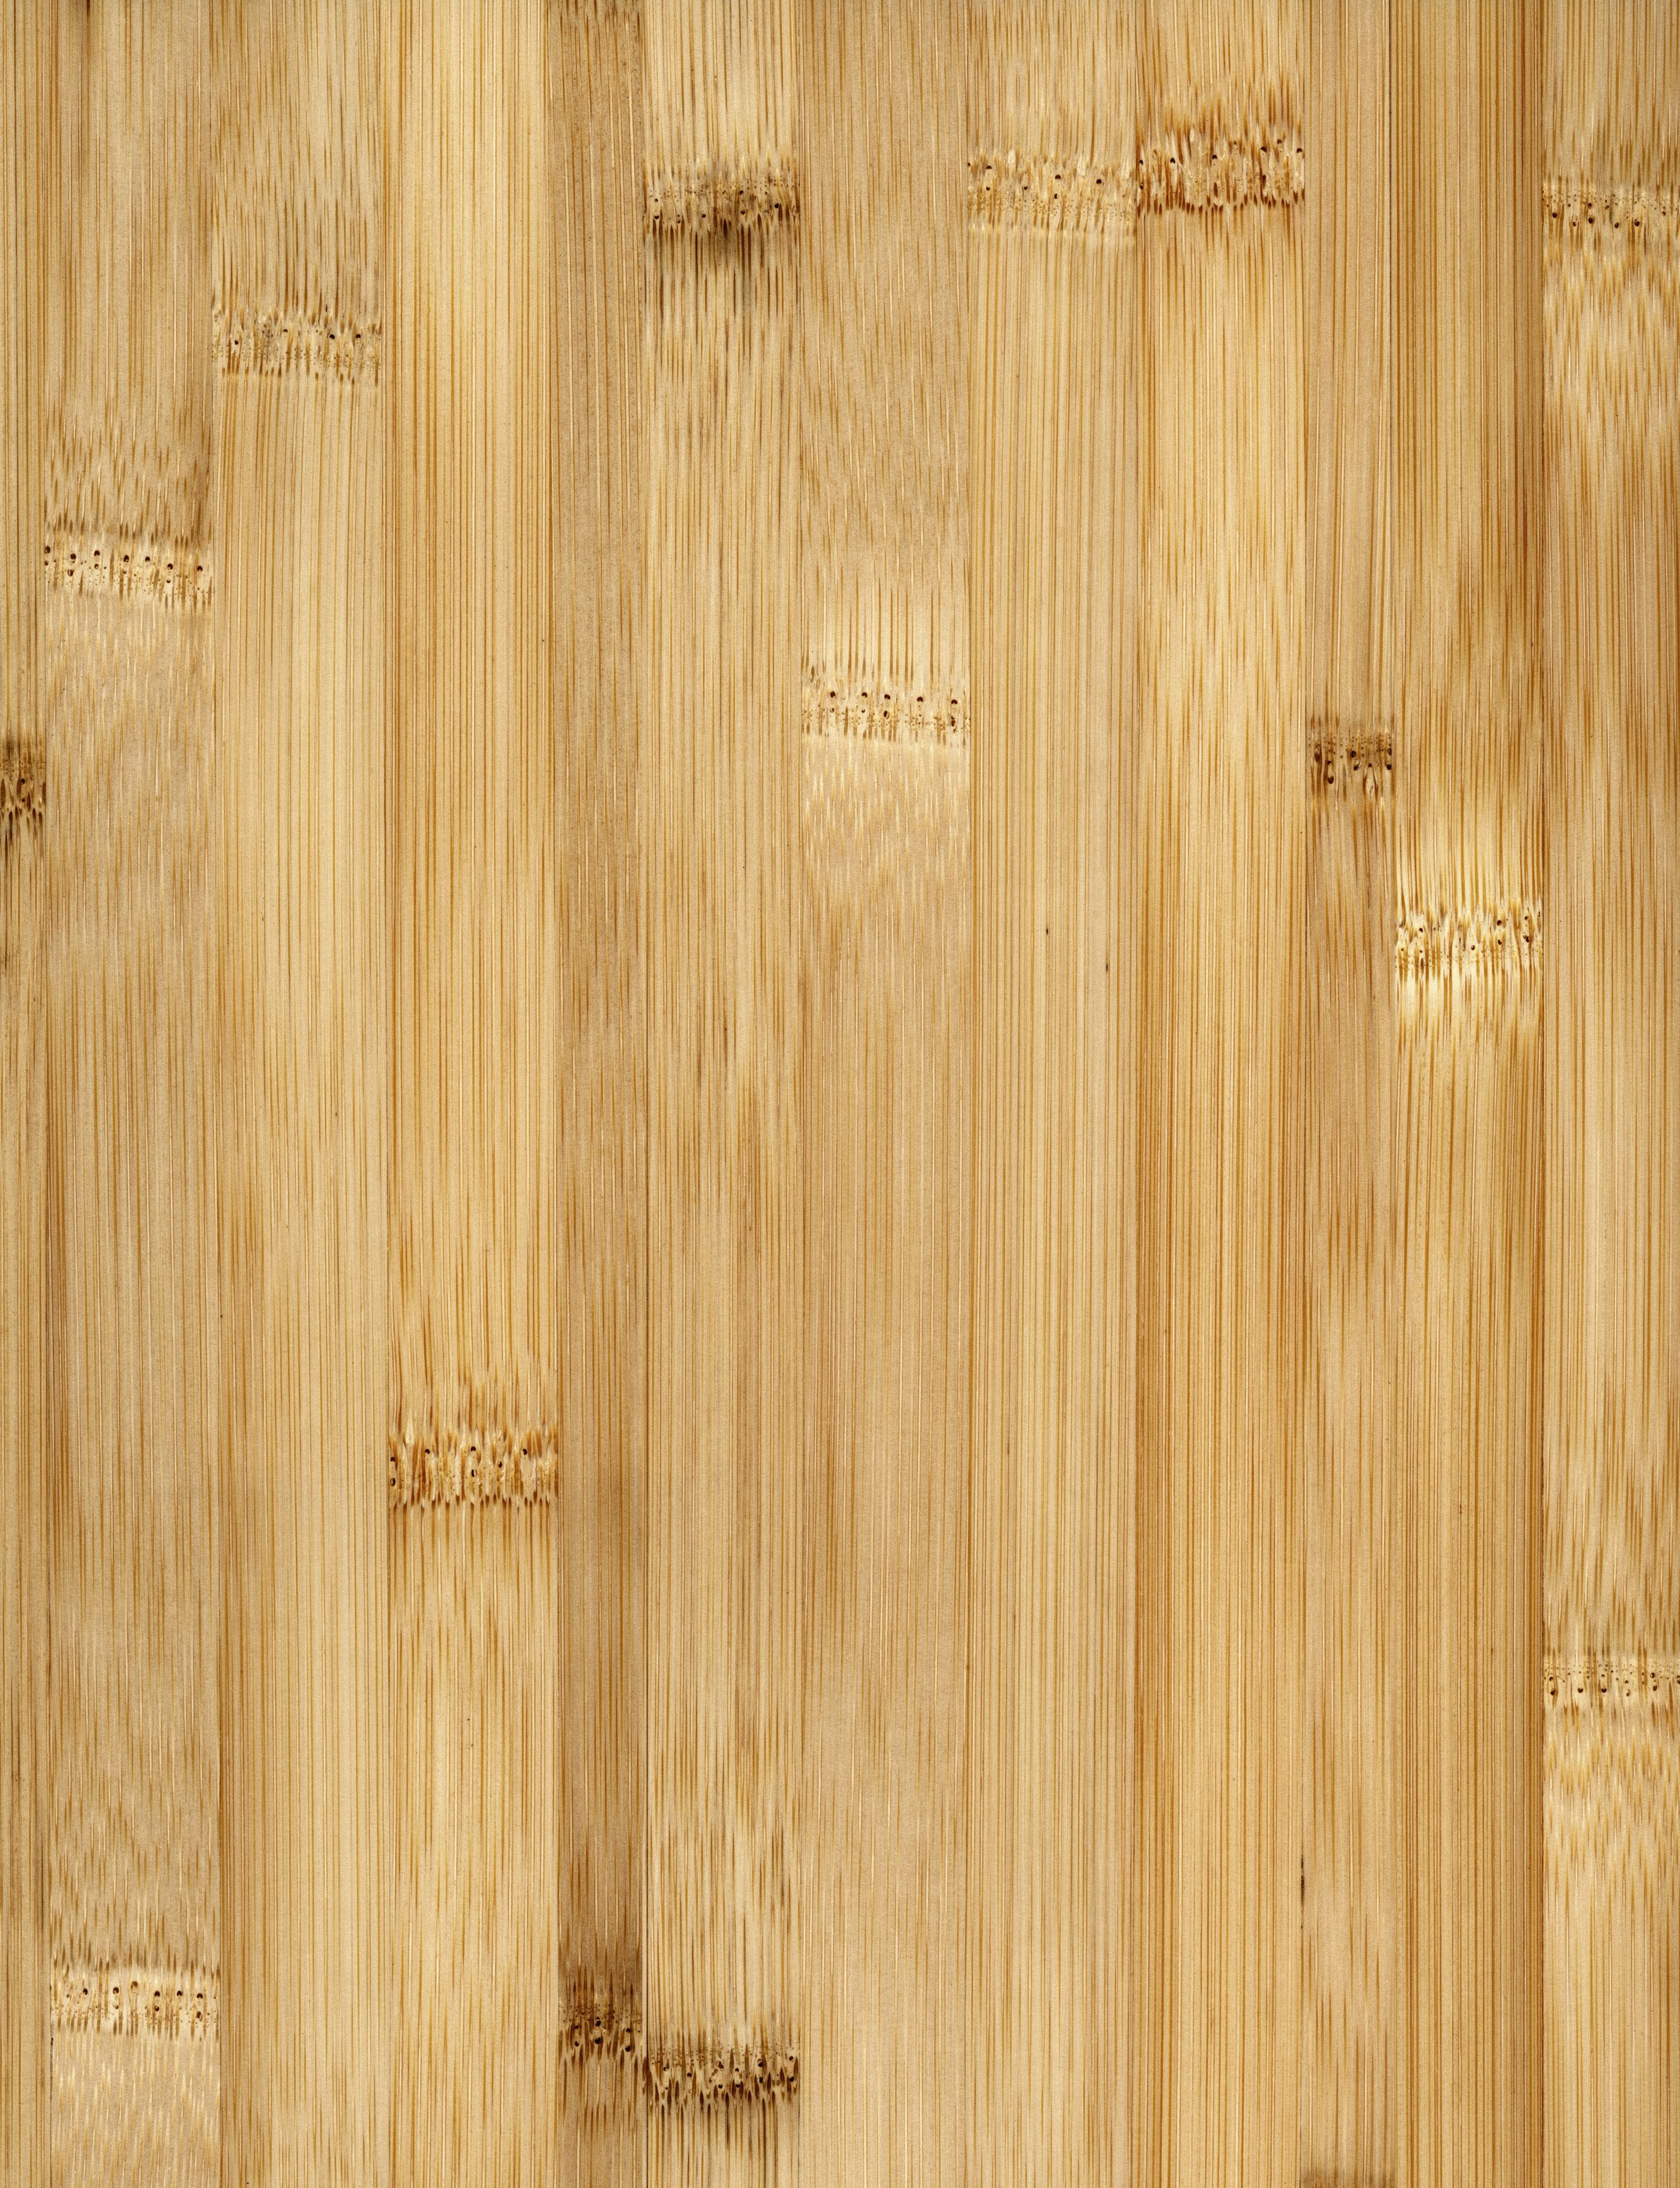 Bamboo Flooring The Basics